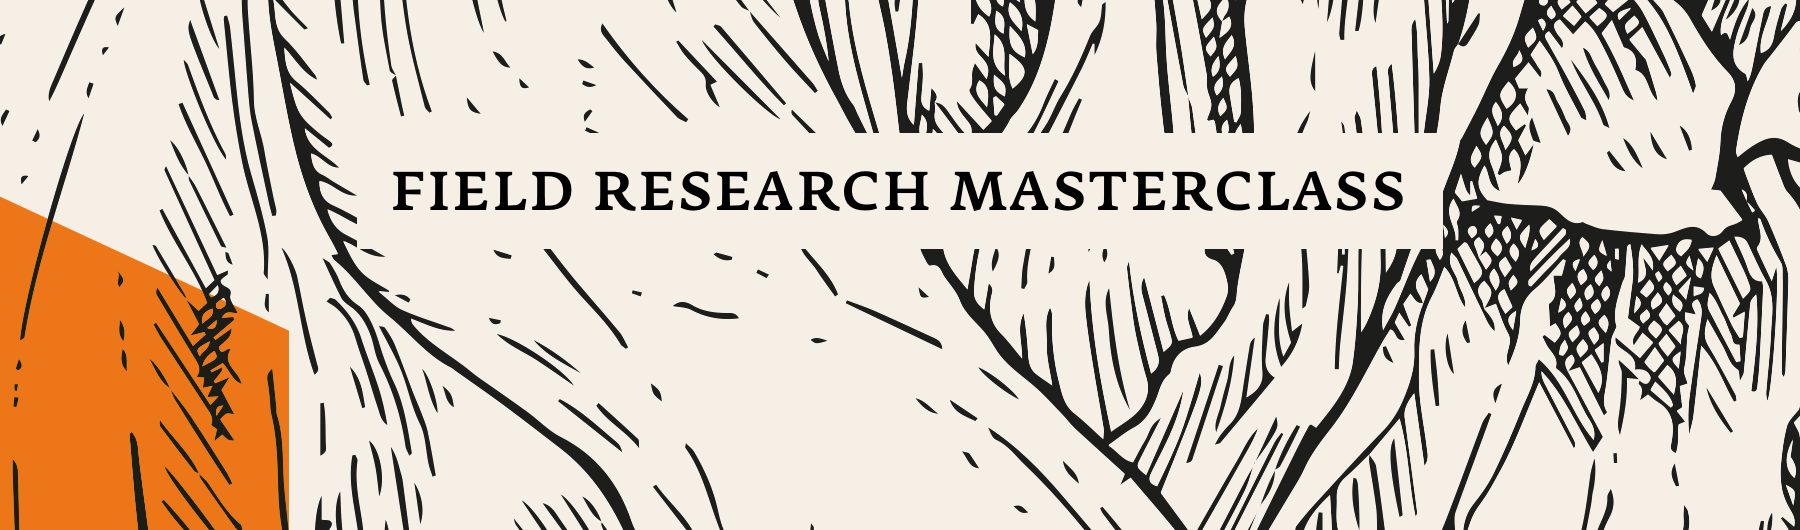 Jan Chipchase - Field Research Masterclass, Brisbane, December 4th